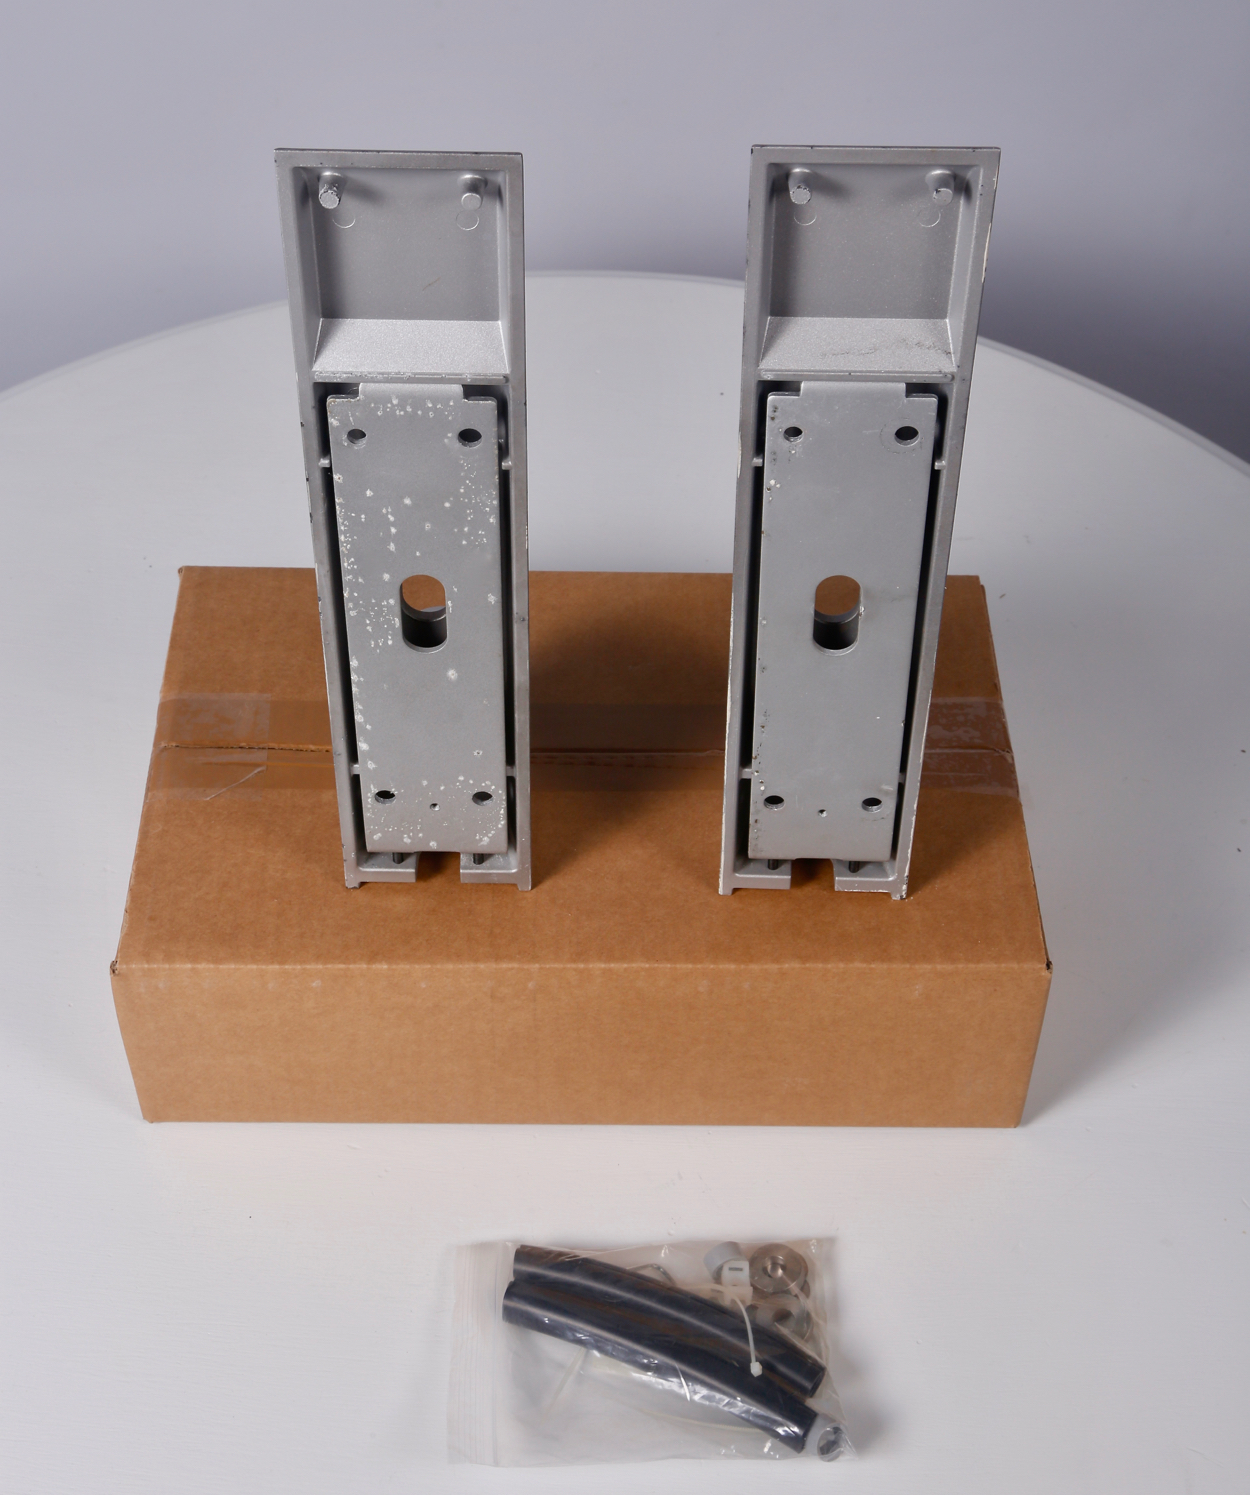 bang and Olufsen BeoLab 8000 Wall Bracket